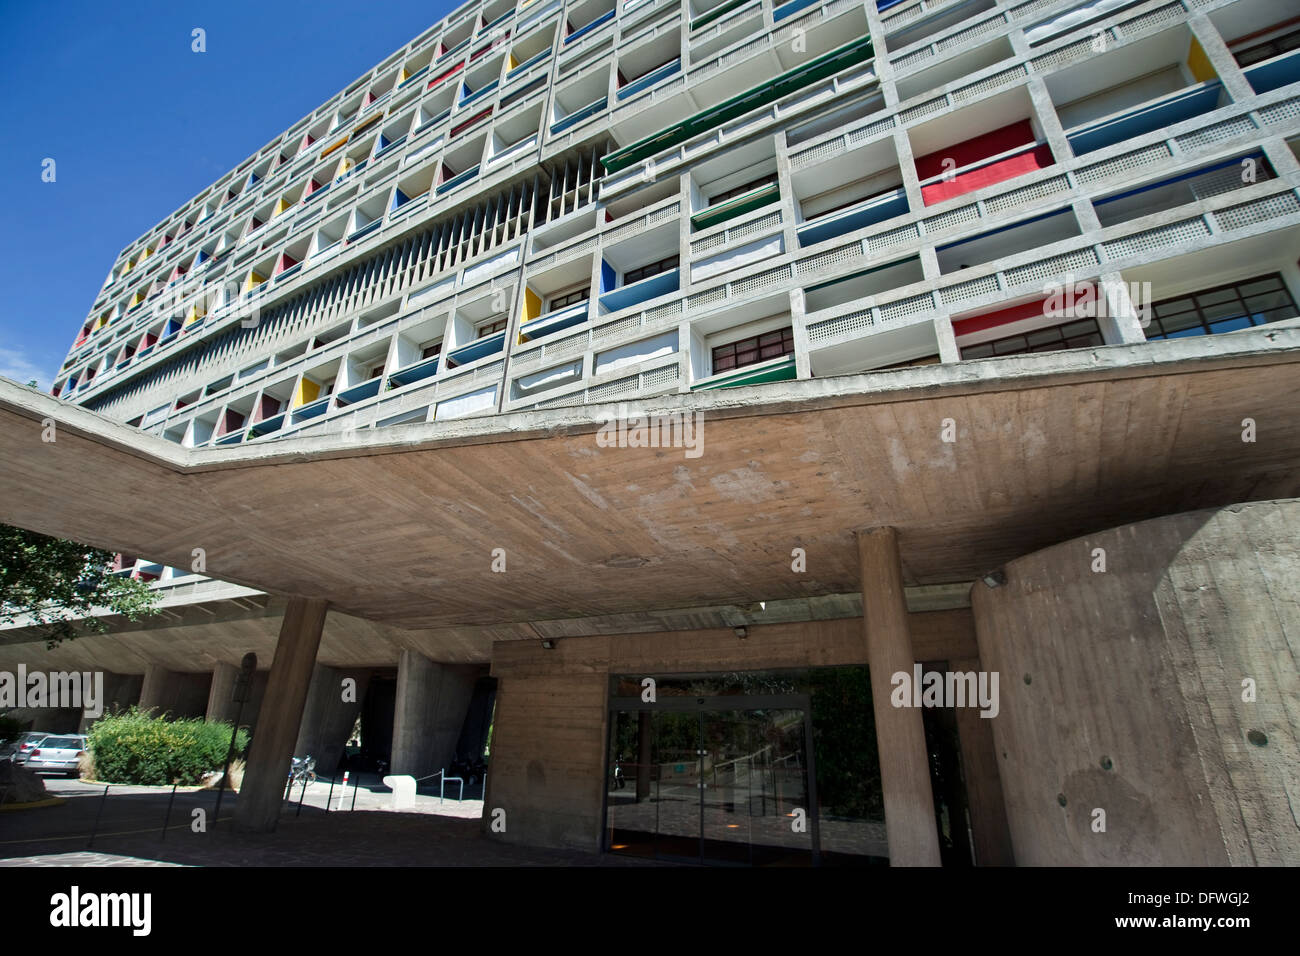 The front elevation of modernist residential housing The Unité d'Habitation designed  by Le Corbusier, - Stock Image